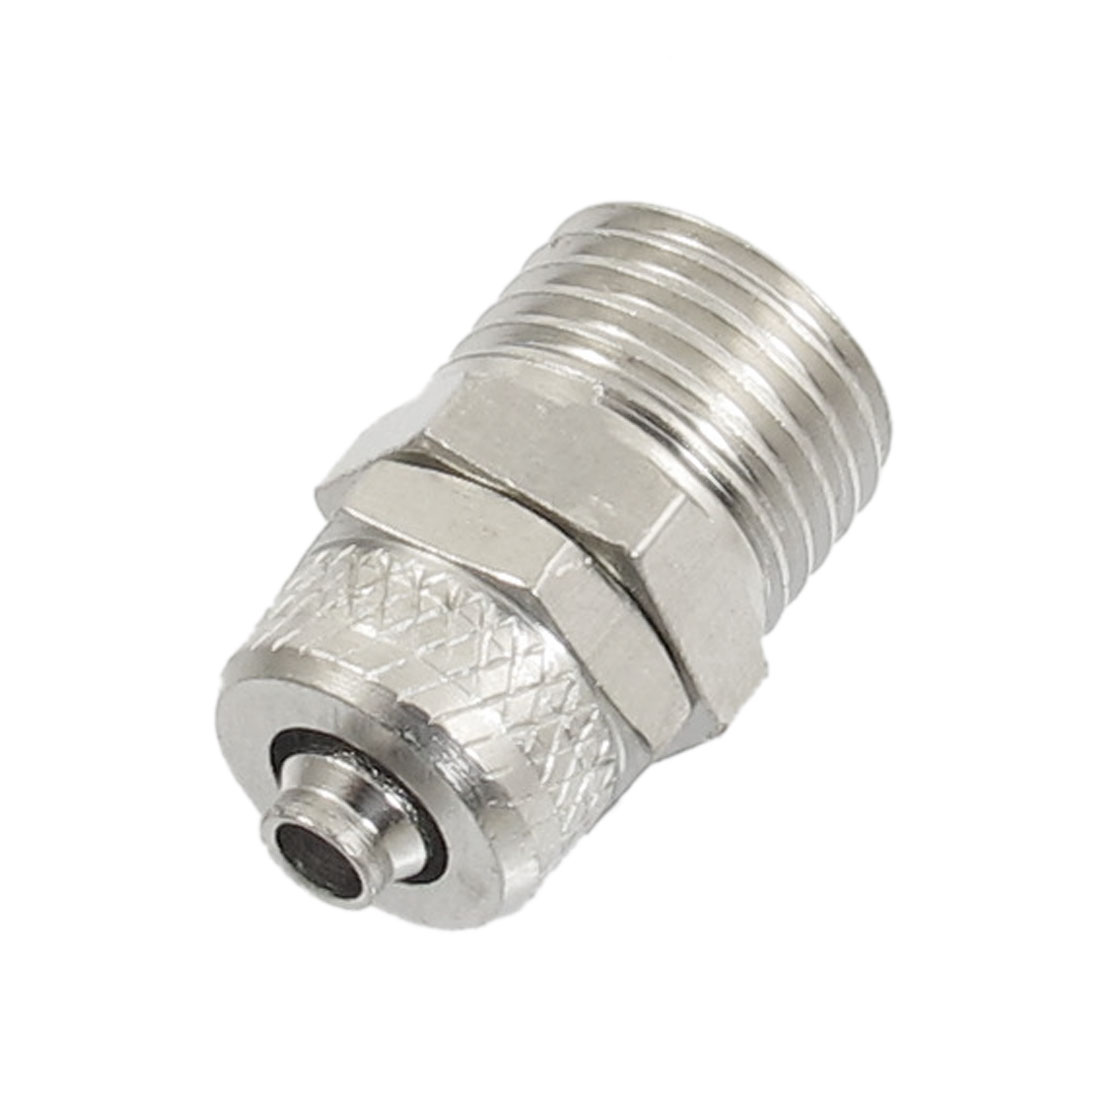 "1/4"" PT Male Thread Straight Pipe Joint Quick Fitting Connector"